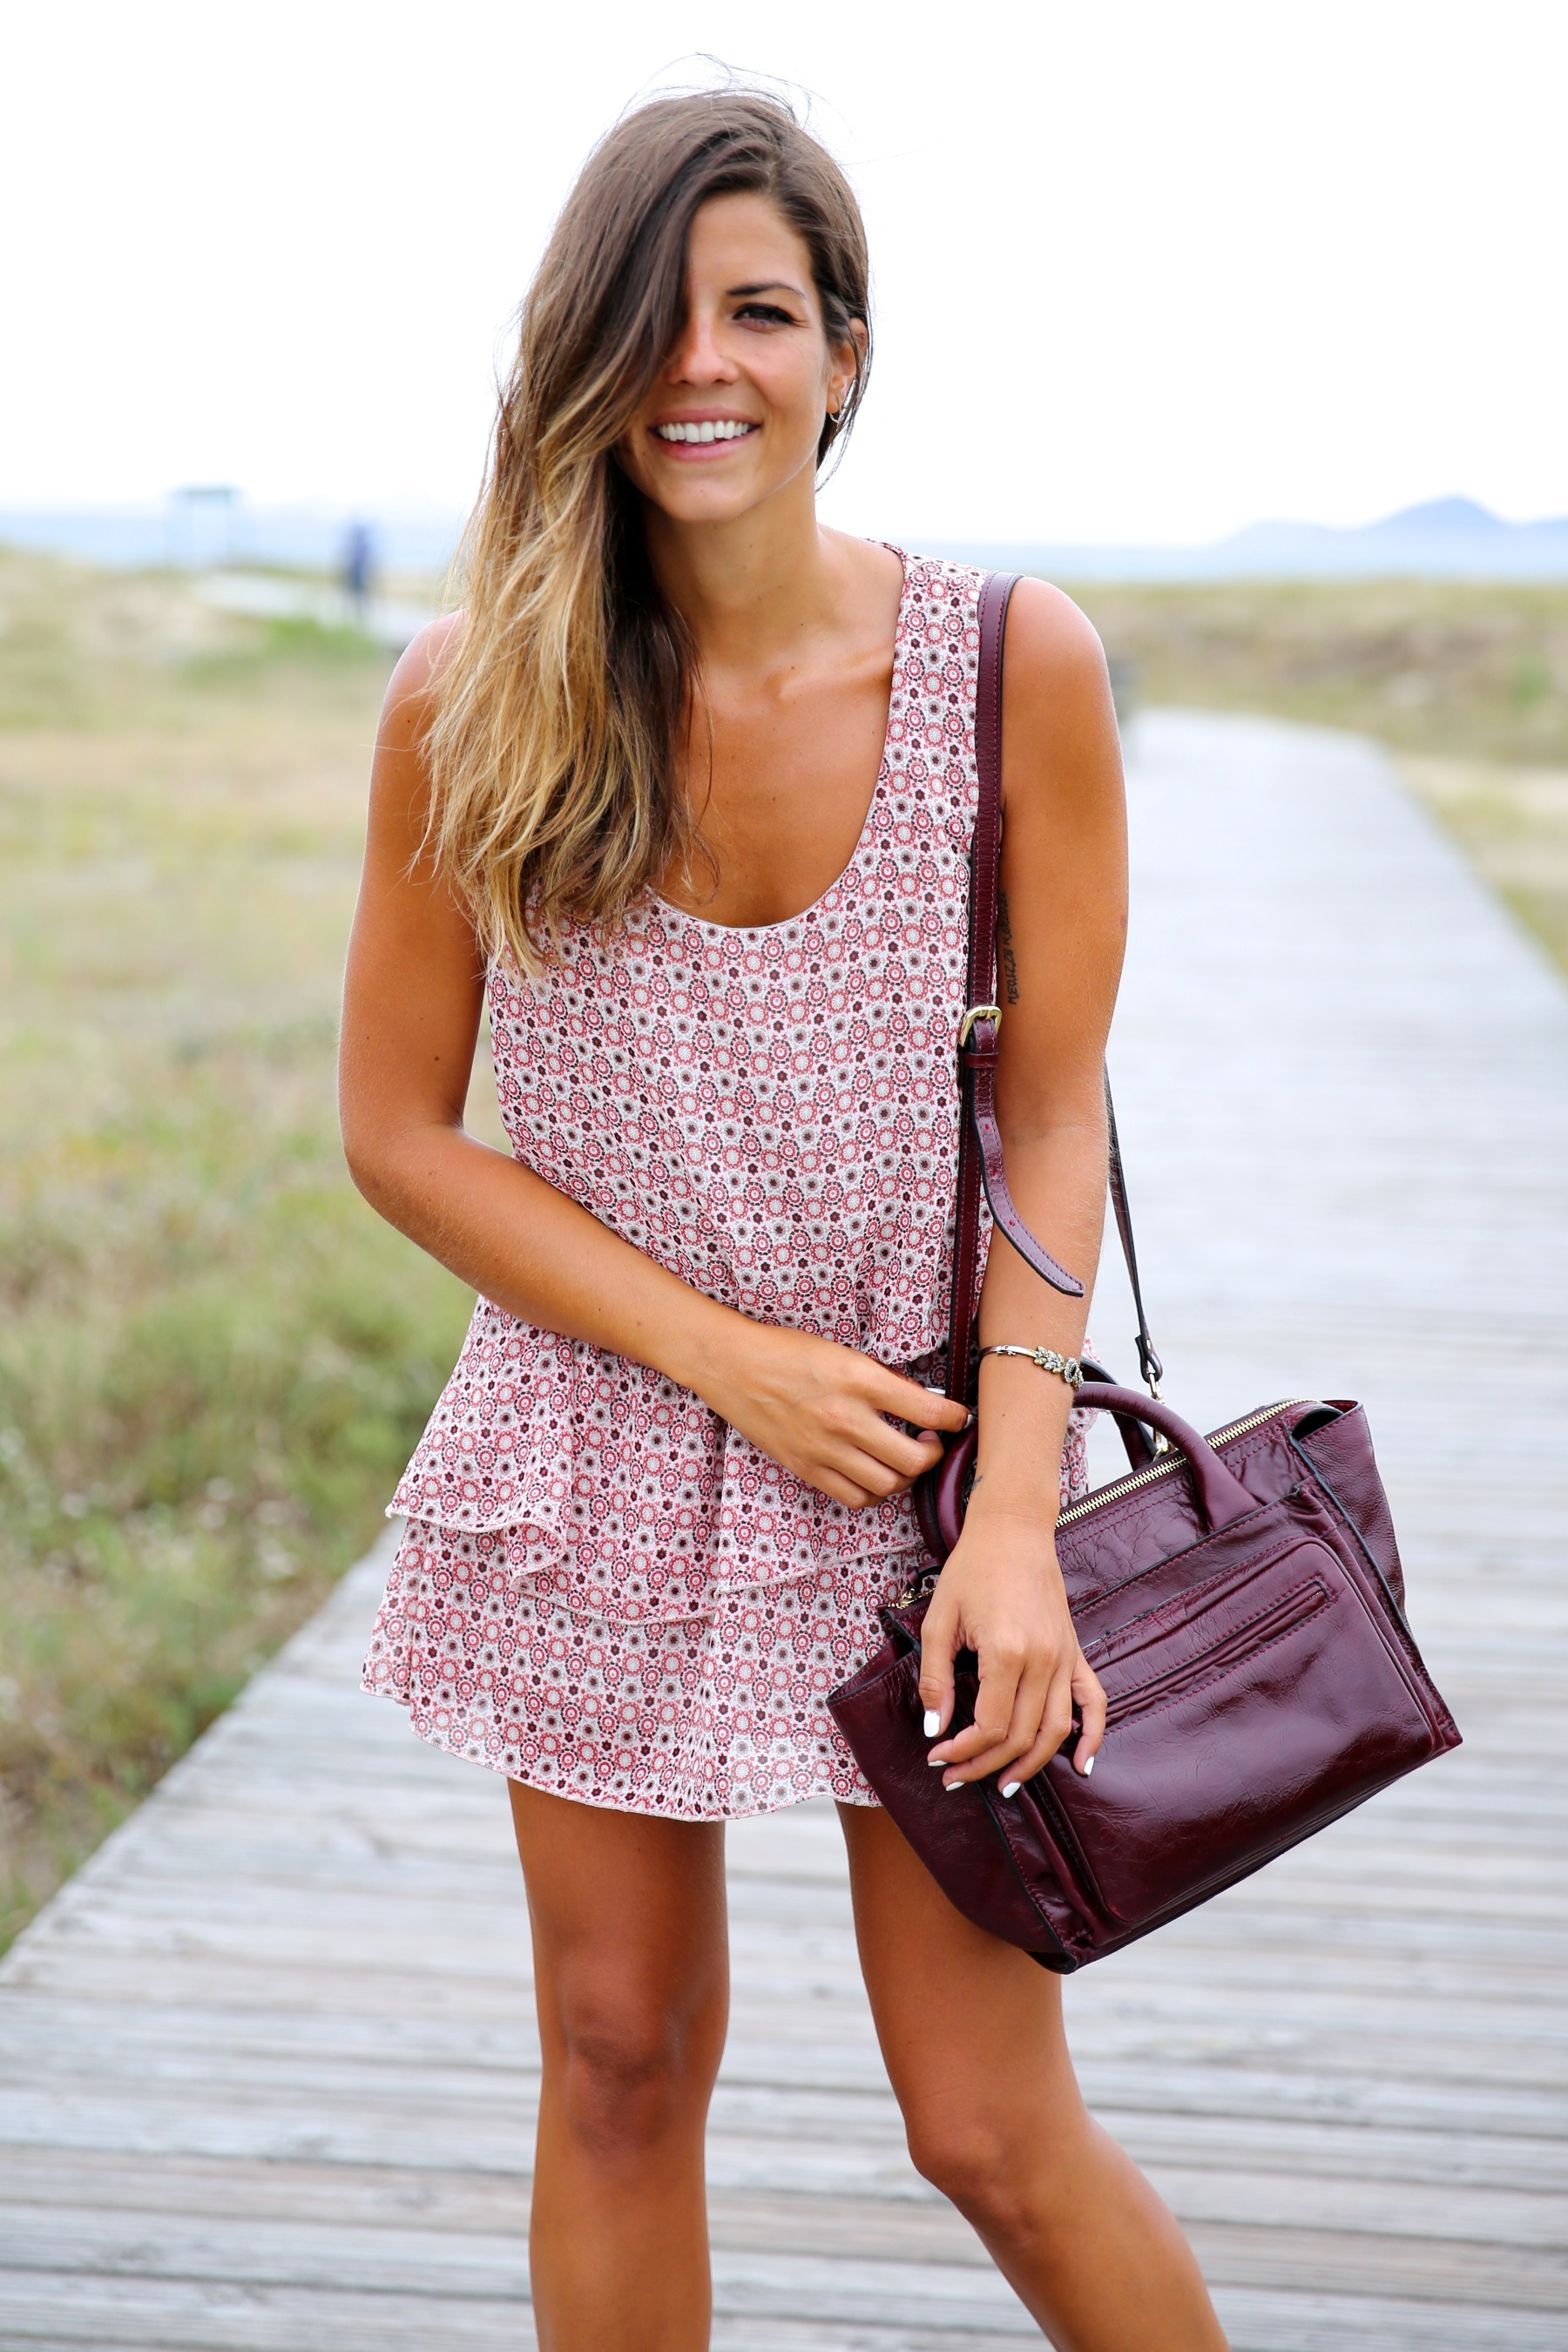 trendy_taste-look-outfit-street_style-ootd-blog-blogger-fashion_spain-moda_españa-boho-beach-playa-galicia-vestido-dress-sandalias-sandals-5